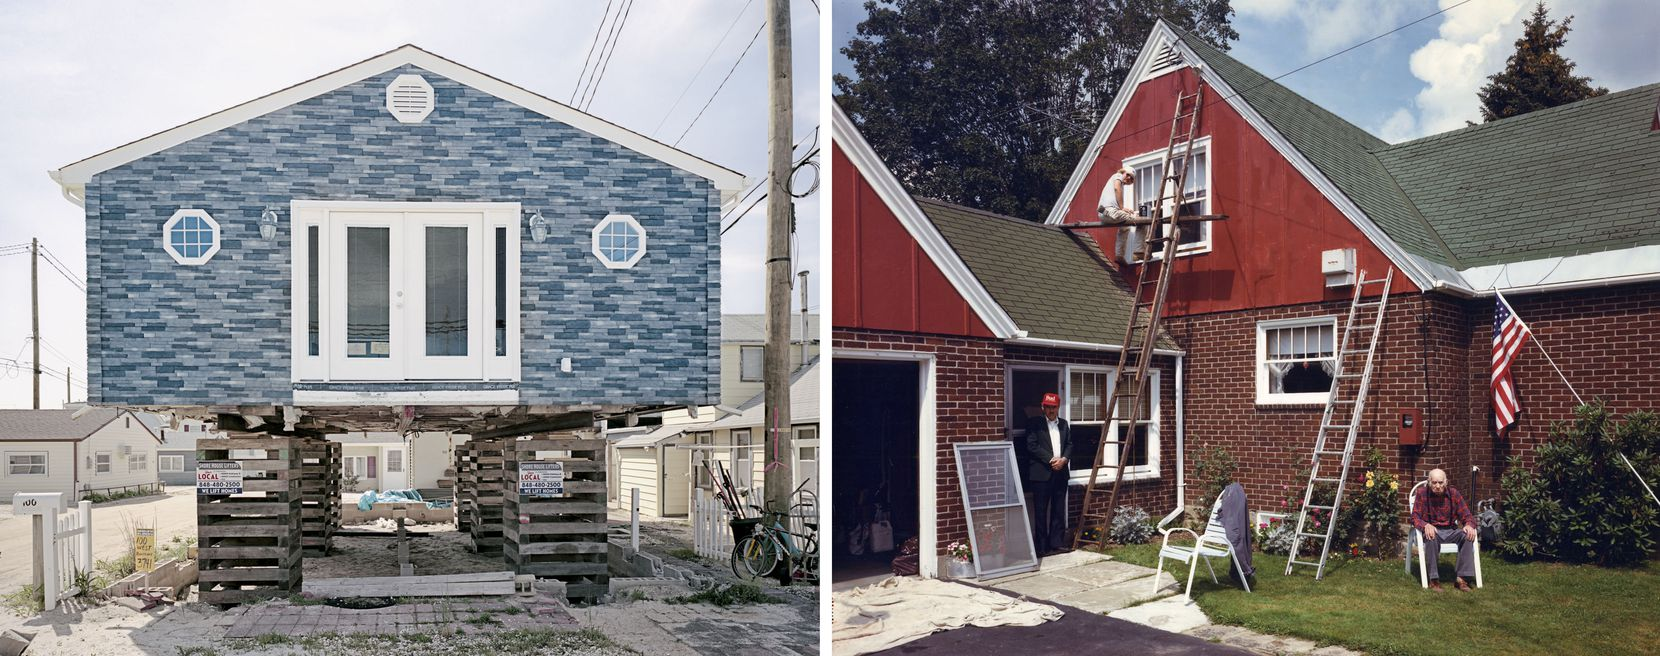 (LEFT) Ira Wagner, Ocean Beach VII, 2012; (RIGHT) David Graham, Near Niagara Falls, NewYork, 1989